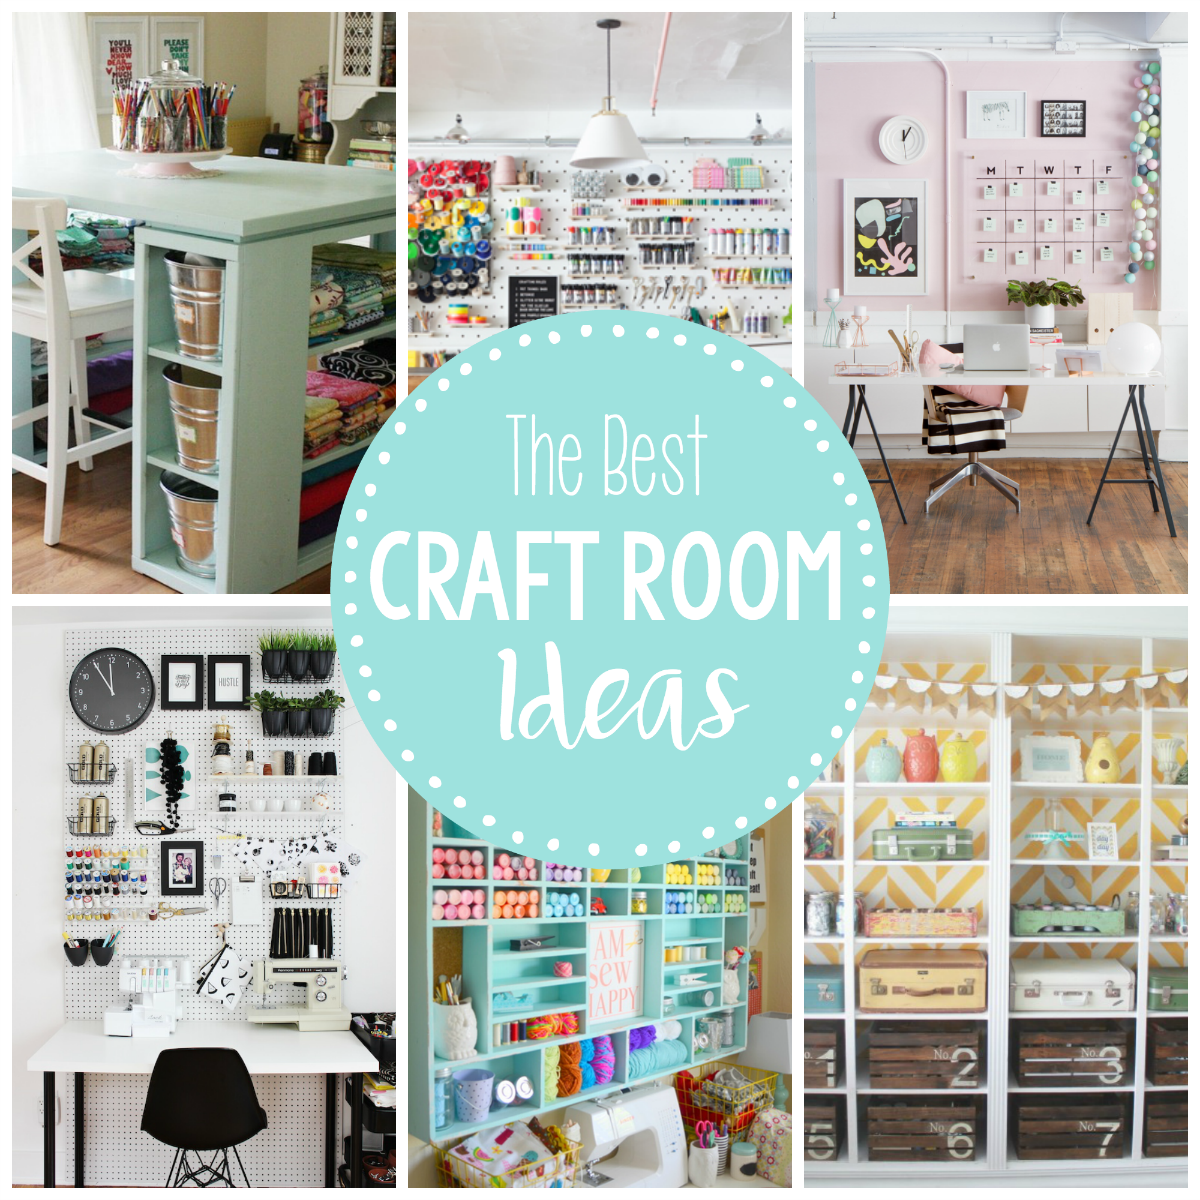 15 fun amazing craft room ideas crazy little projects for Building a craft room